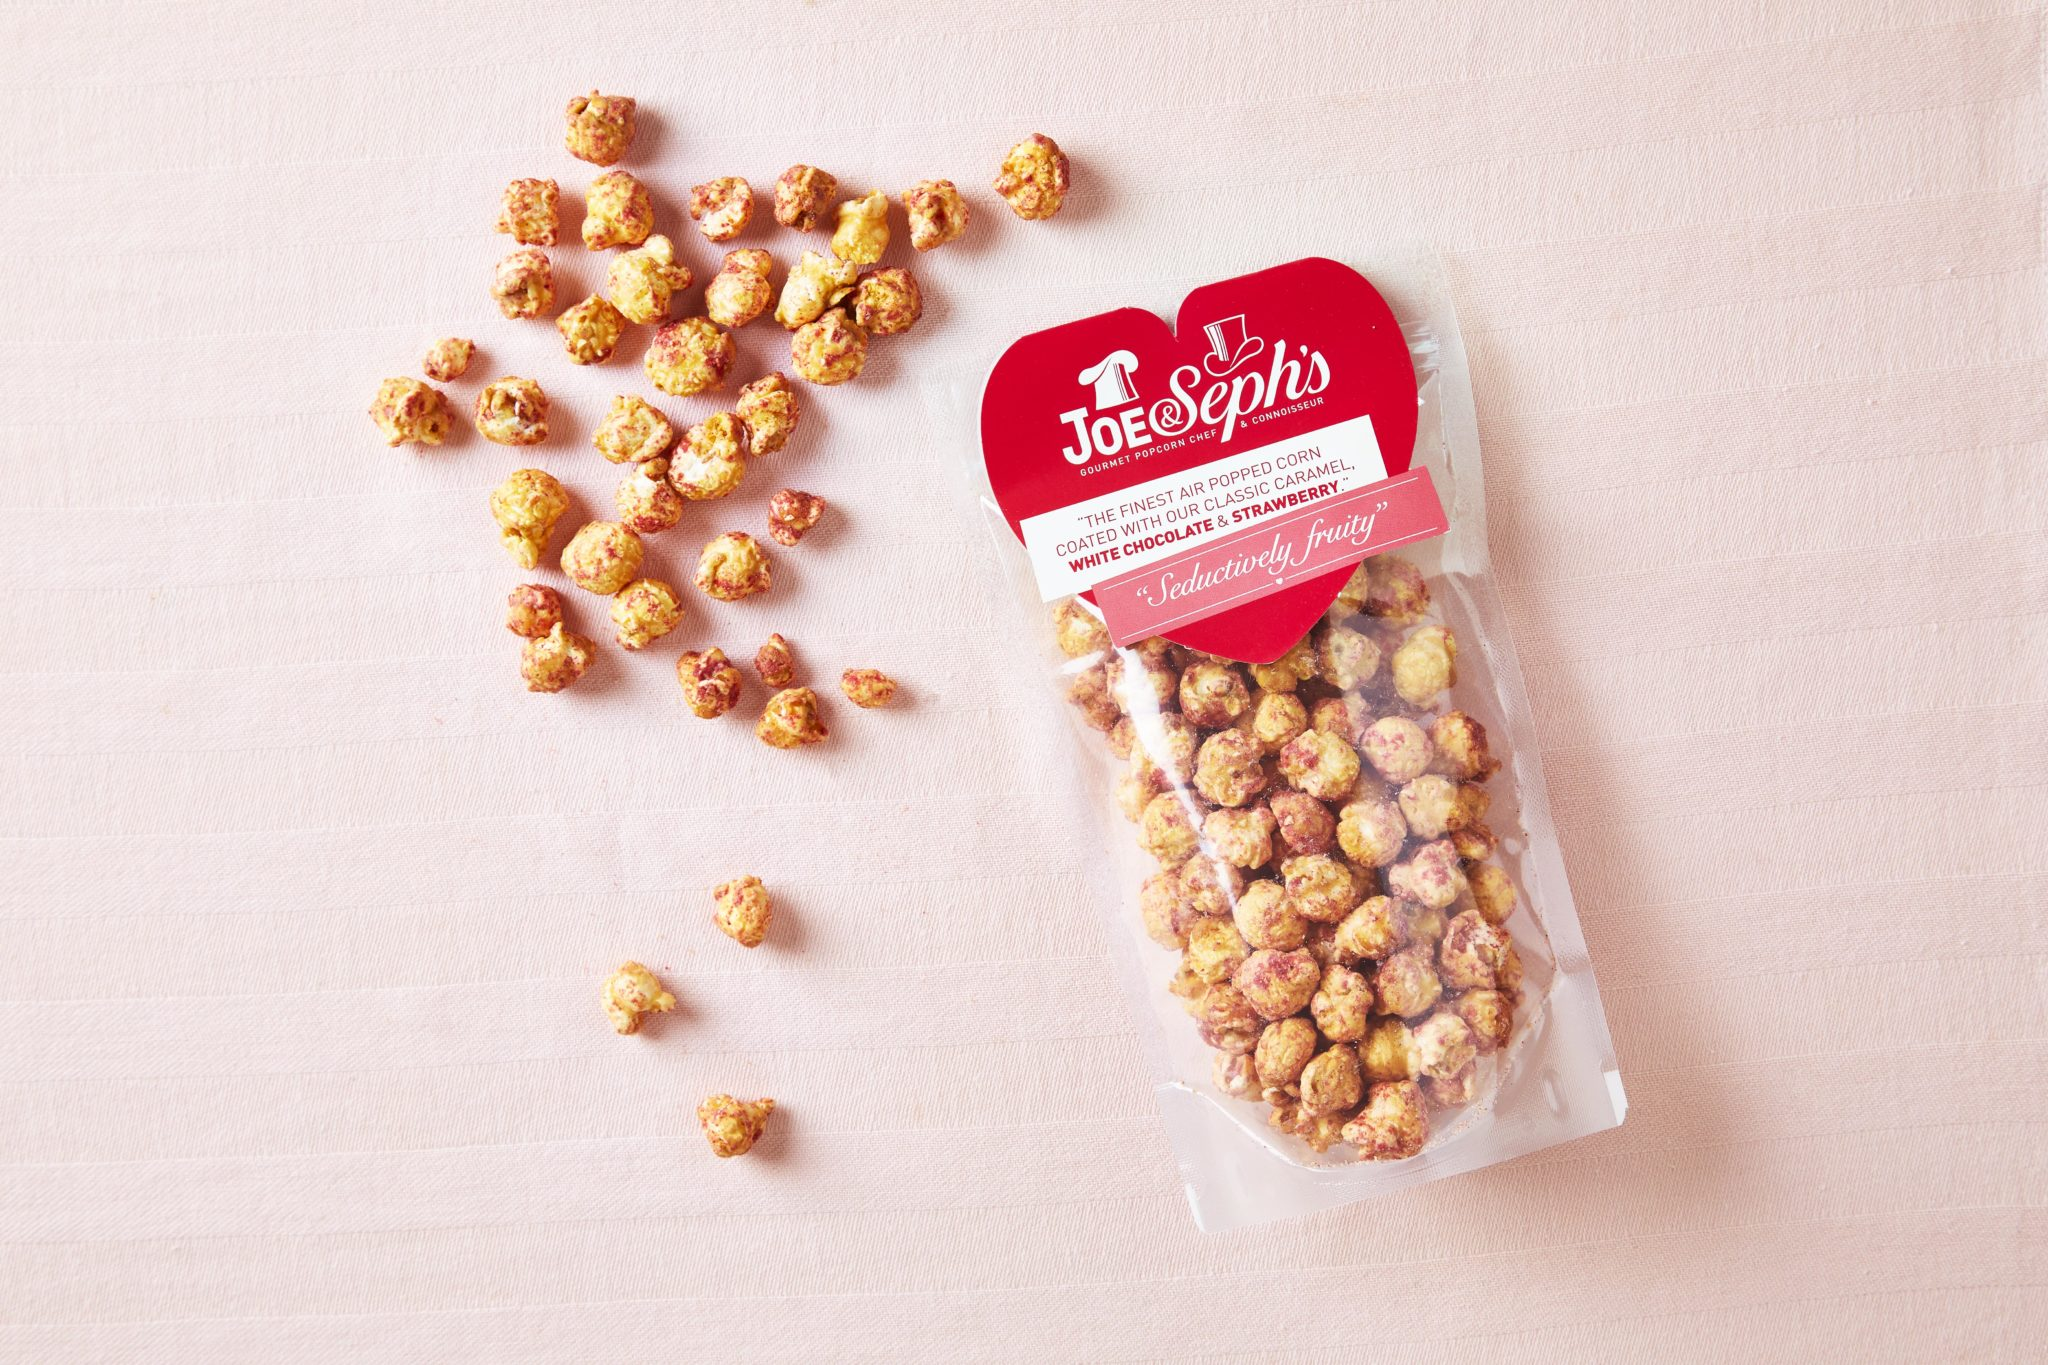 Joe & Seph's White Choc & Strawberry Gourmet Popcorn